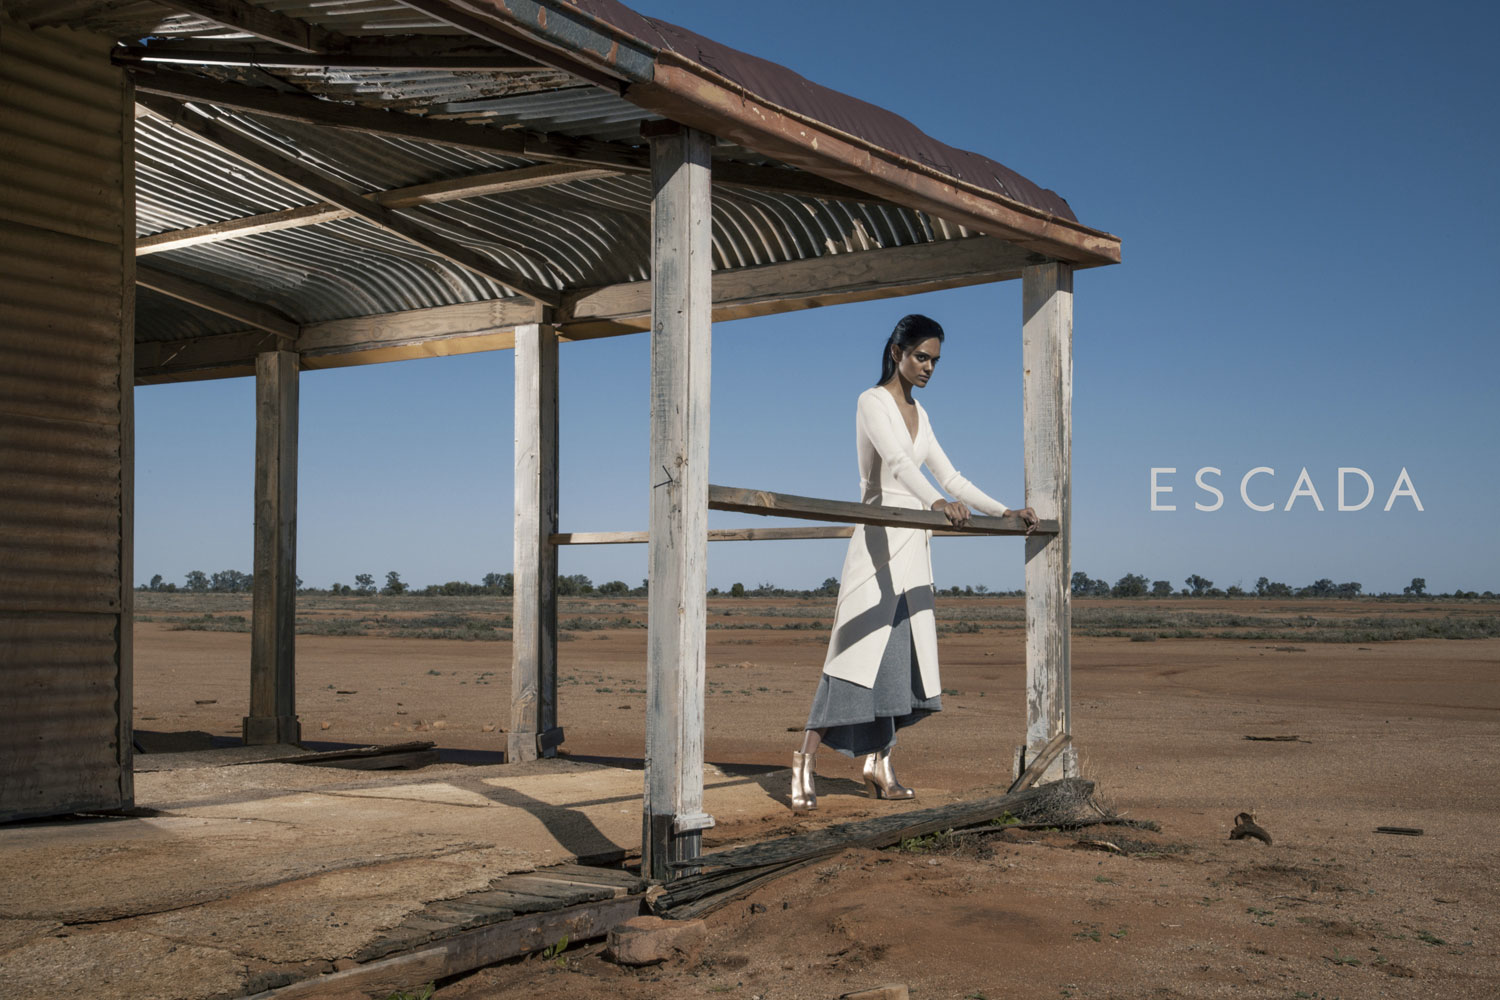 ESCADA - Part of a sponsored editorial campaign branding project